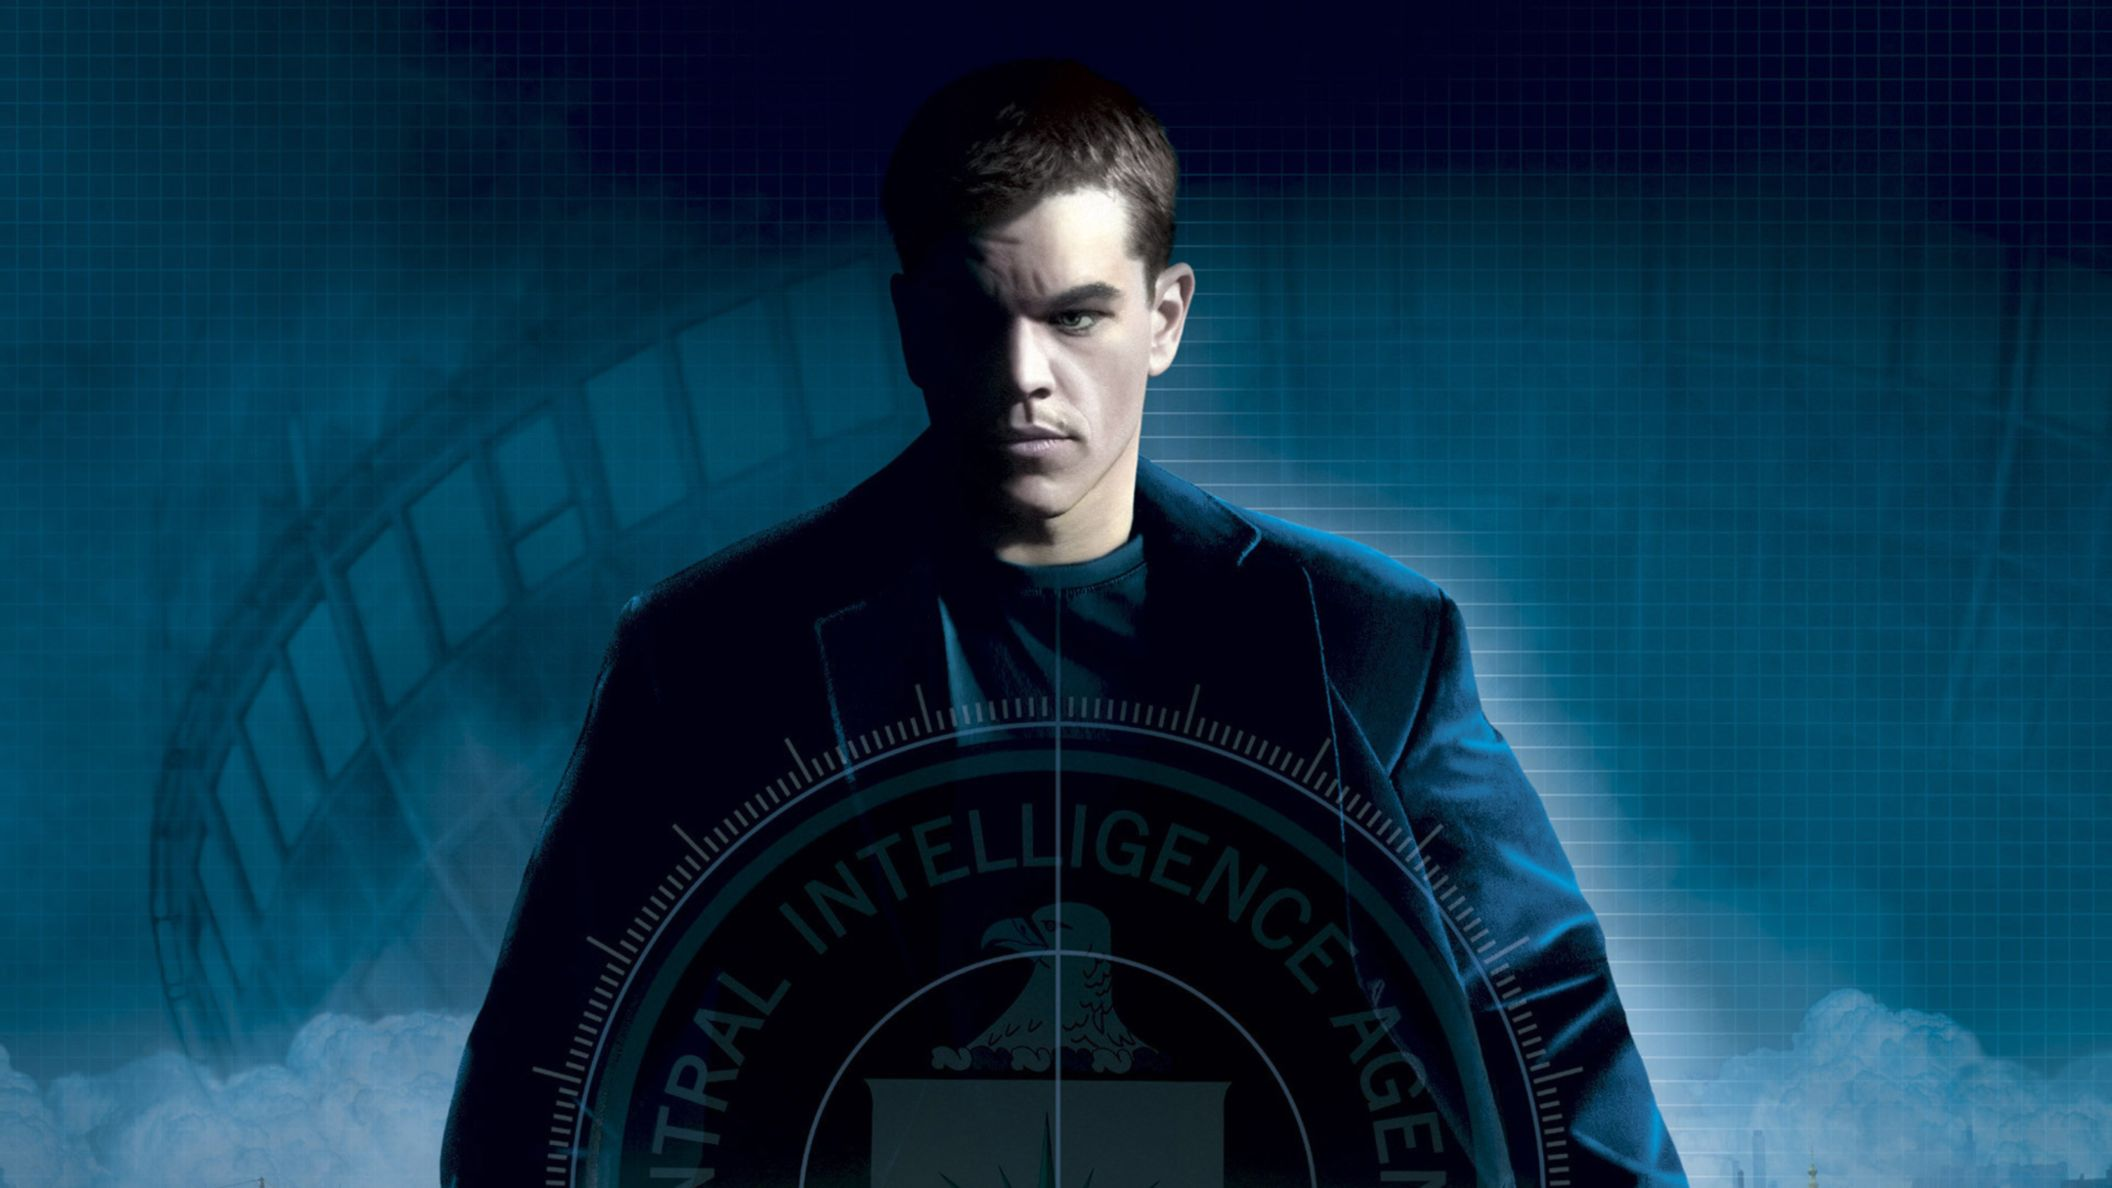 Download free HD Matt Damon in Bourne Movies Hd Wallpaper, image